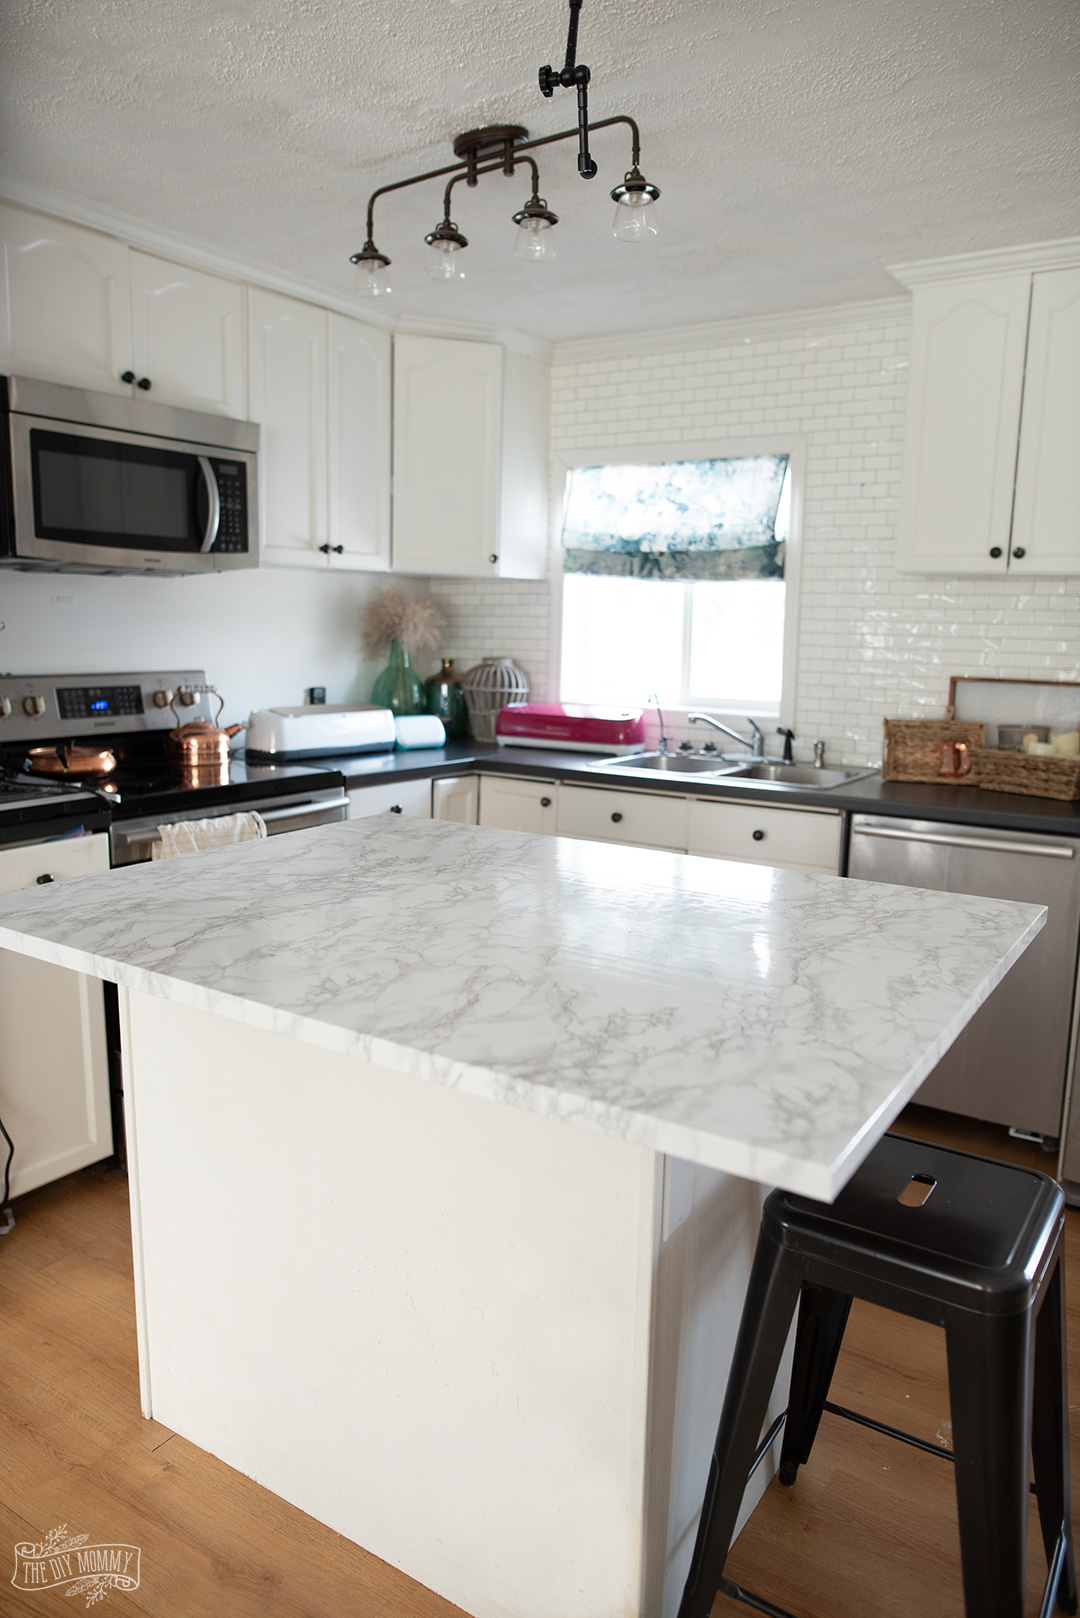 Learn how to install contact paper countertops step by step, everything you need to know, and my best tips and tricks